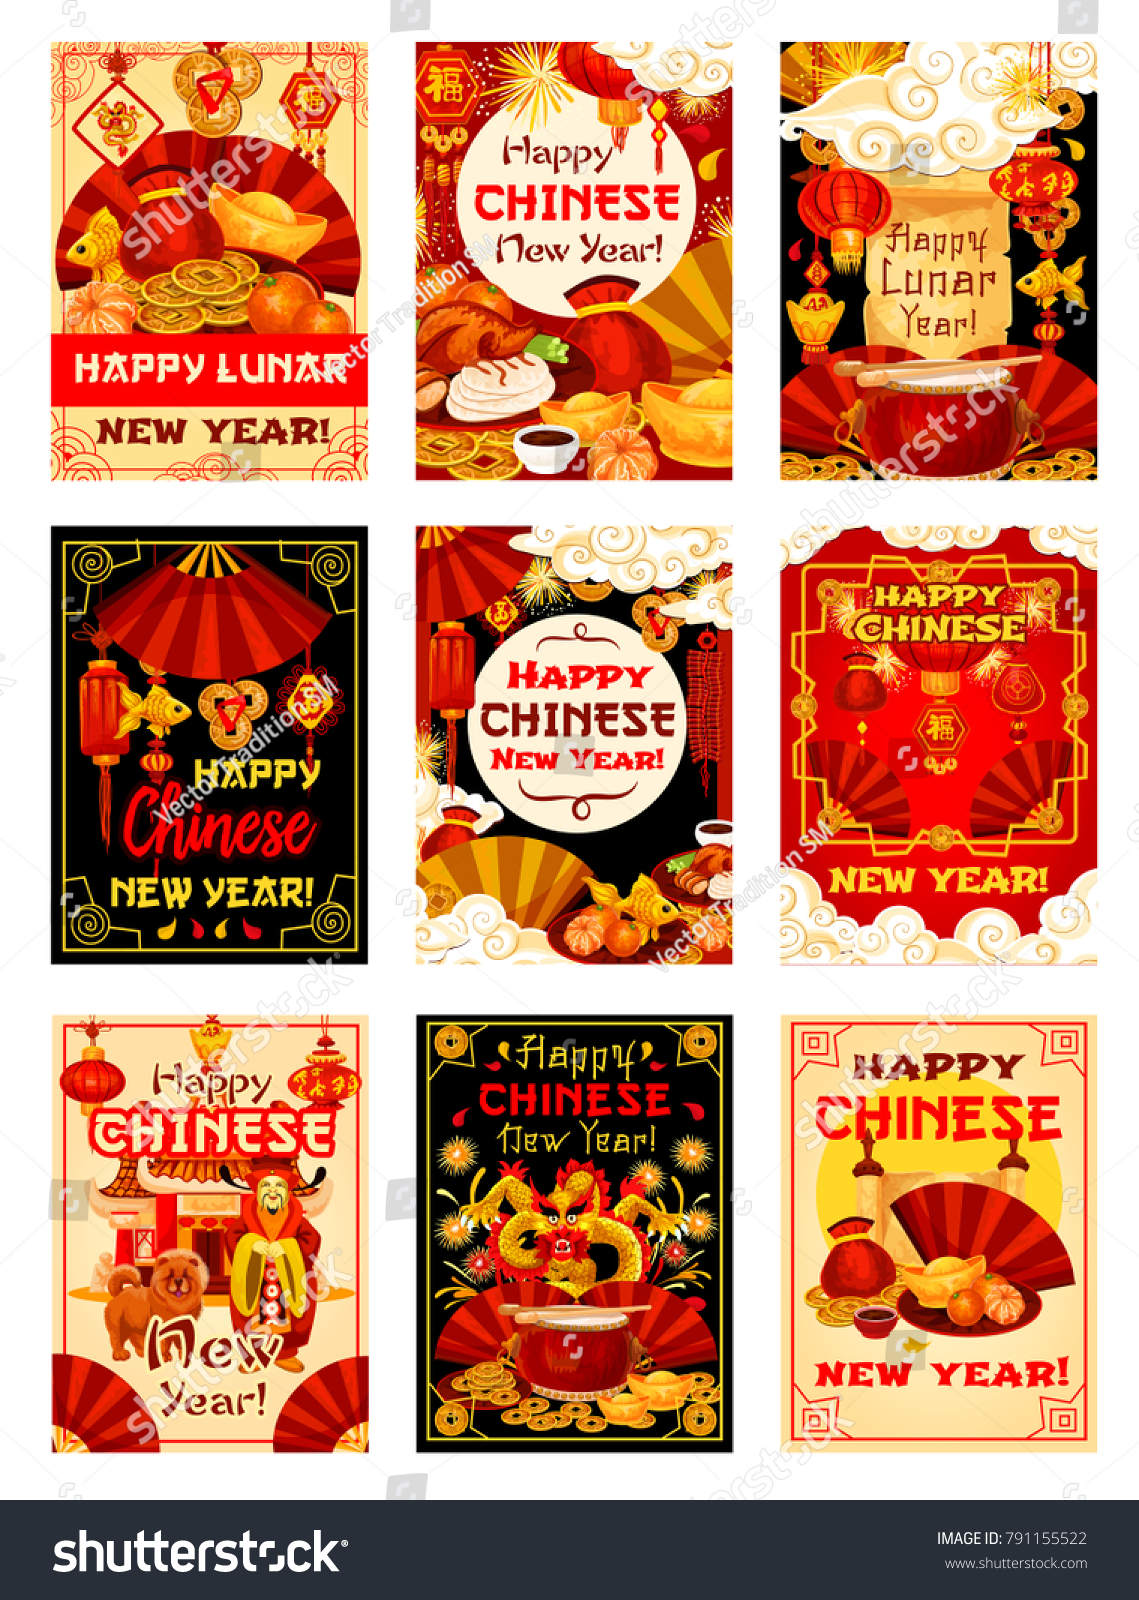 Happy Chinese New Year And Lunar Dog Year Posters Or Greeting Cards